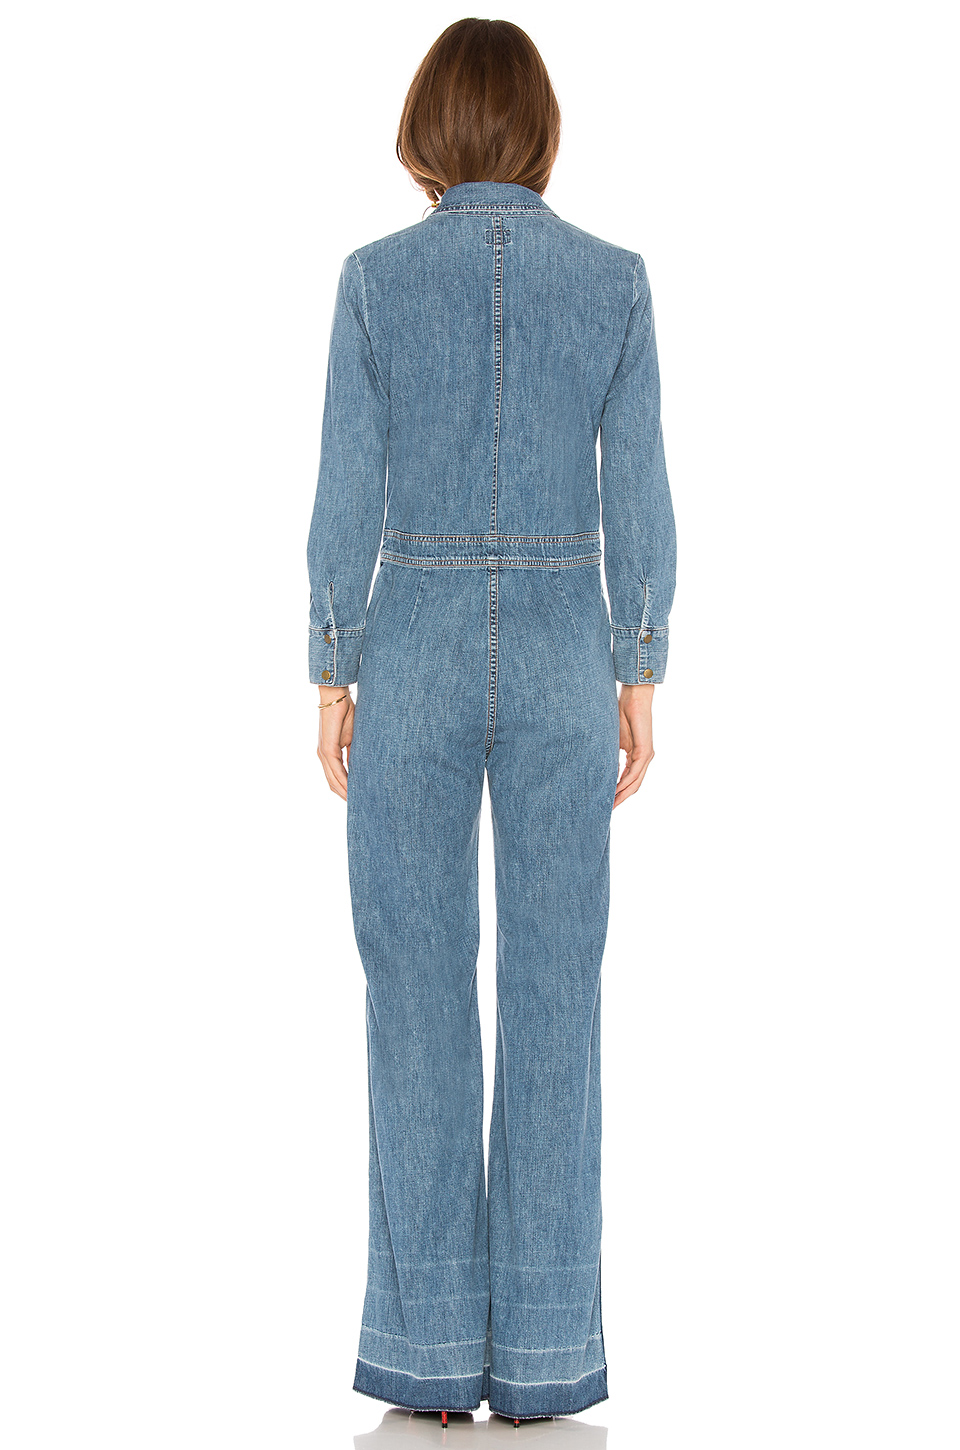 76a635ef8462 Buy Original Citizens of Humanity Farrah 70s Jumpsuit at Indonesia ...